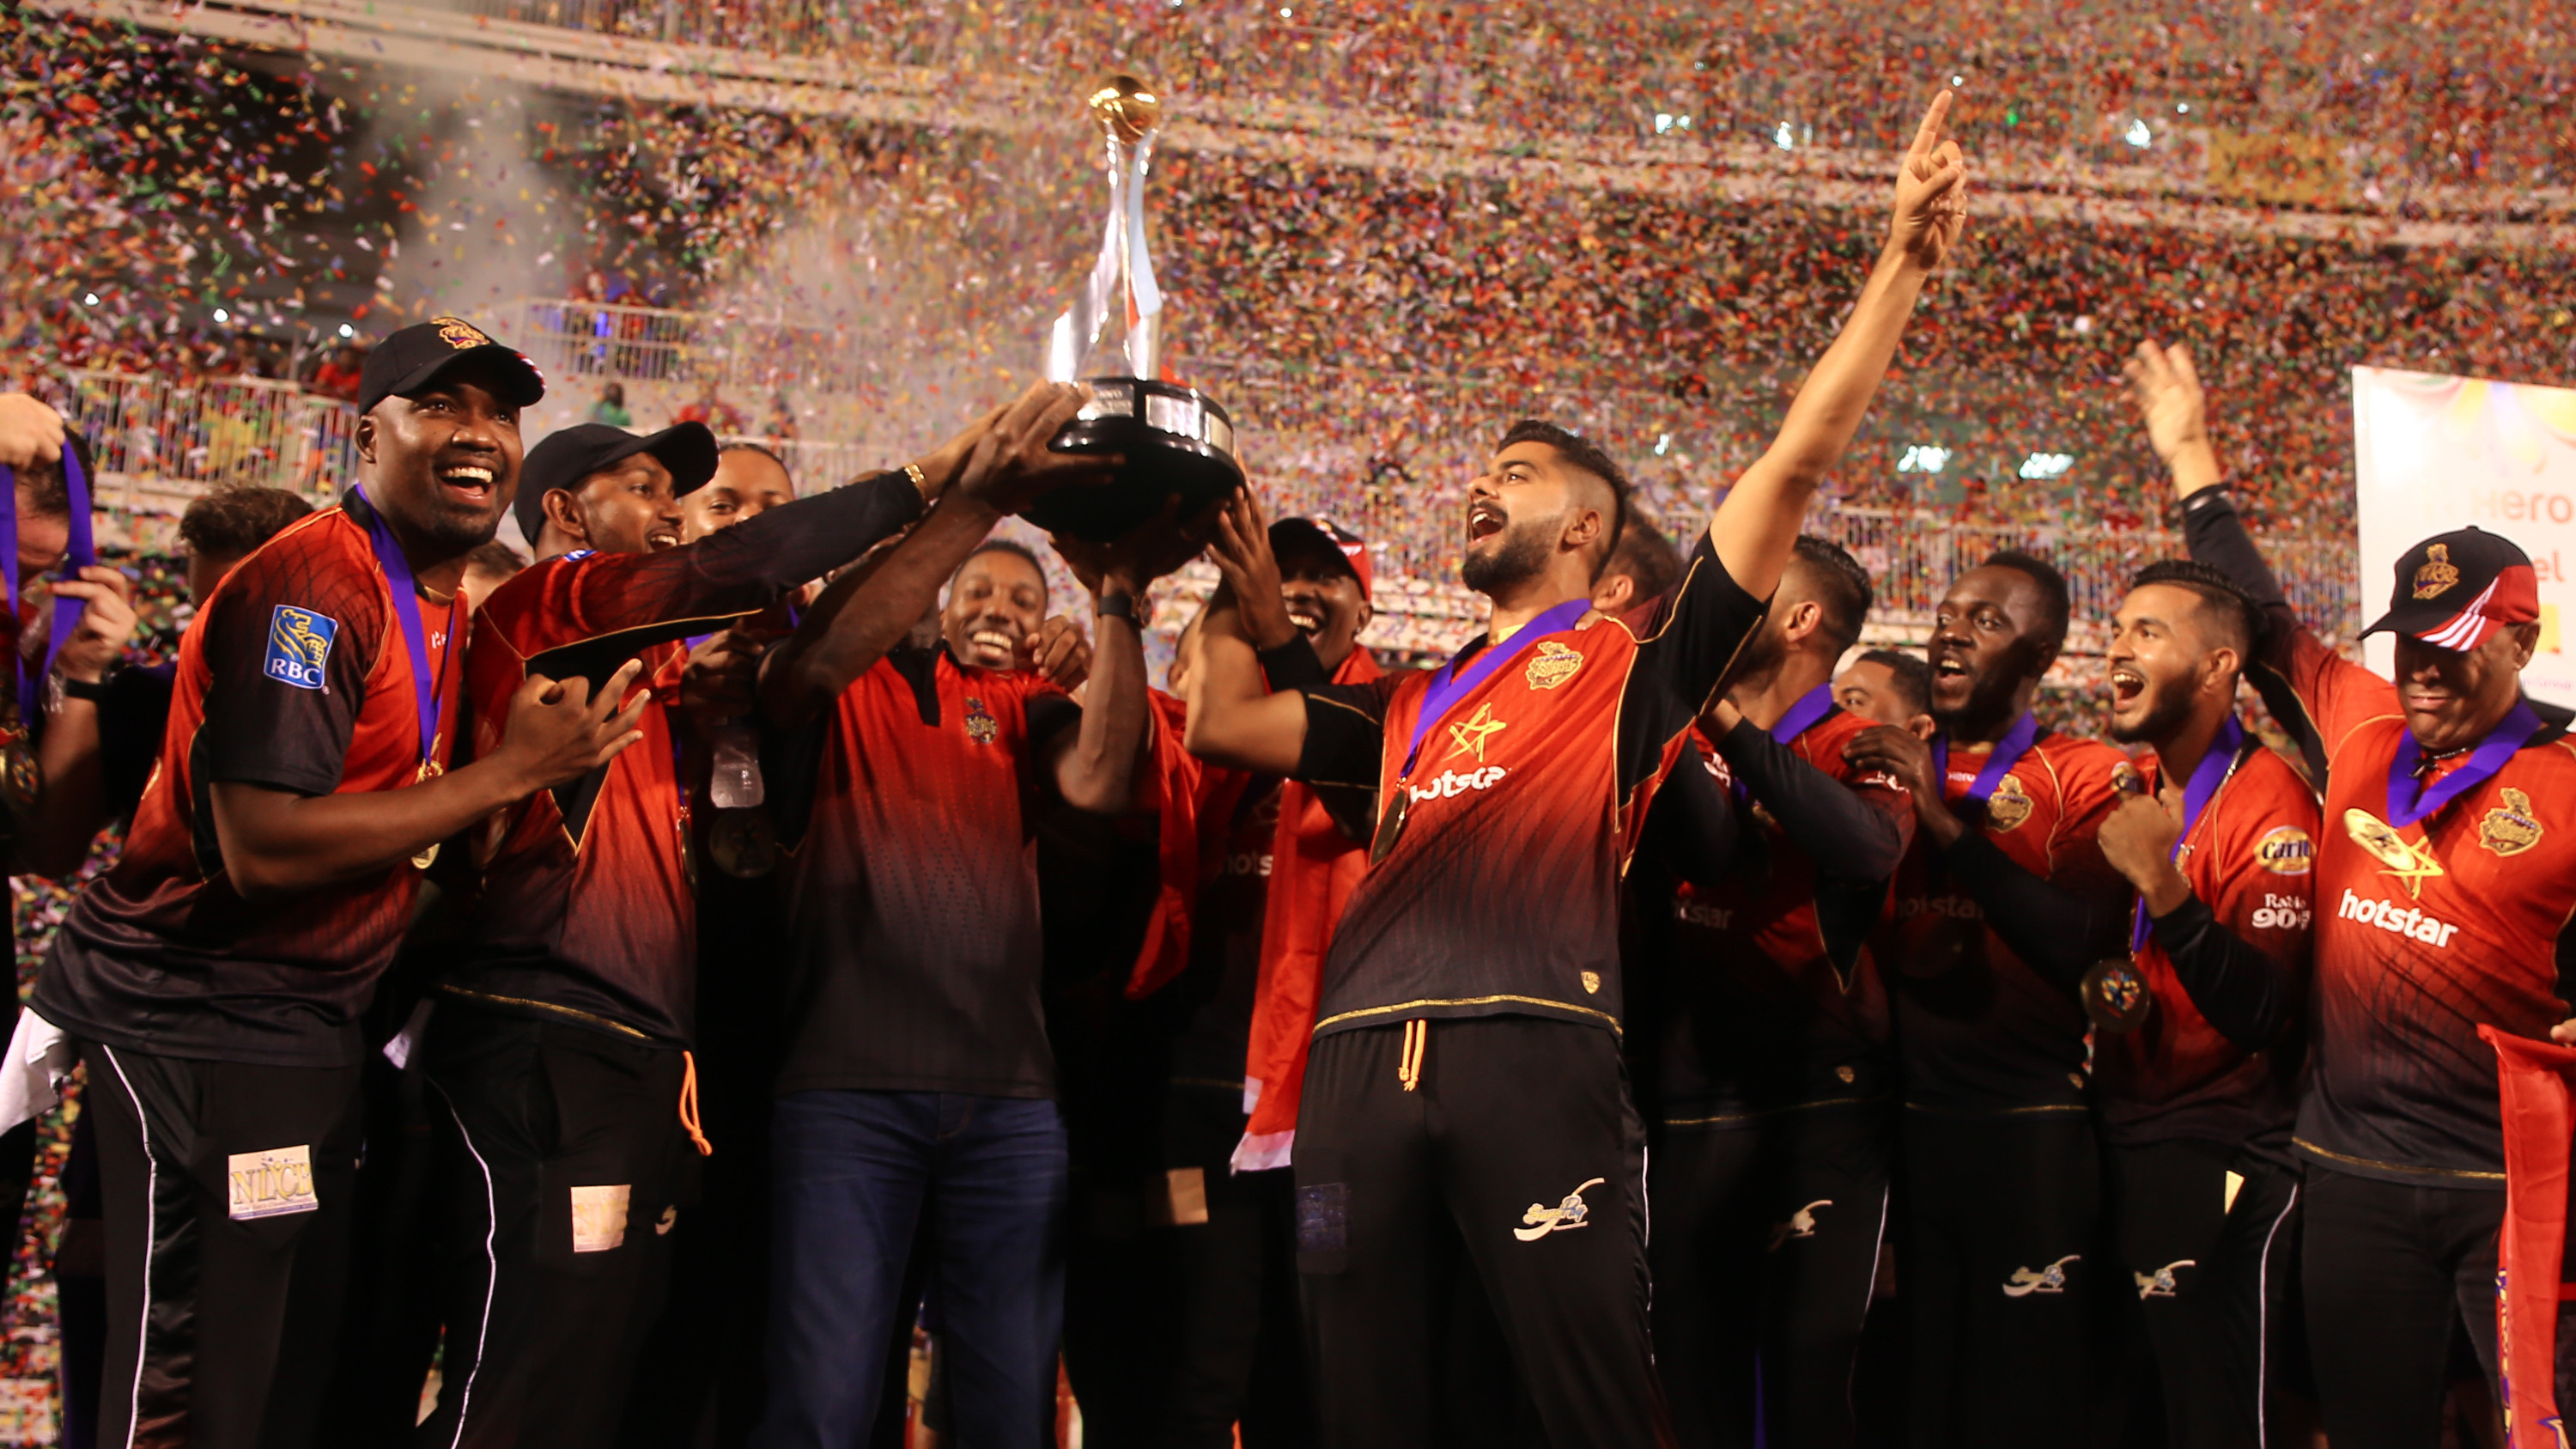 CPL 2018: Trinbago Knight Riders win their third title, with Pierre and Munro excelling on the big night